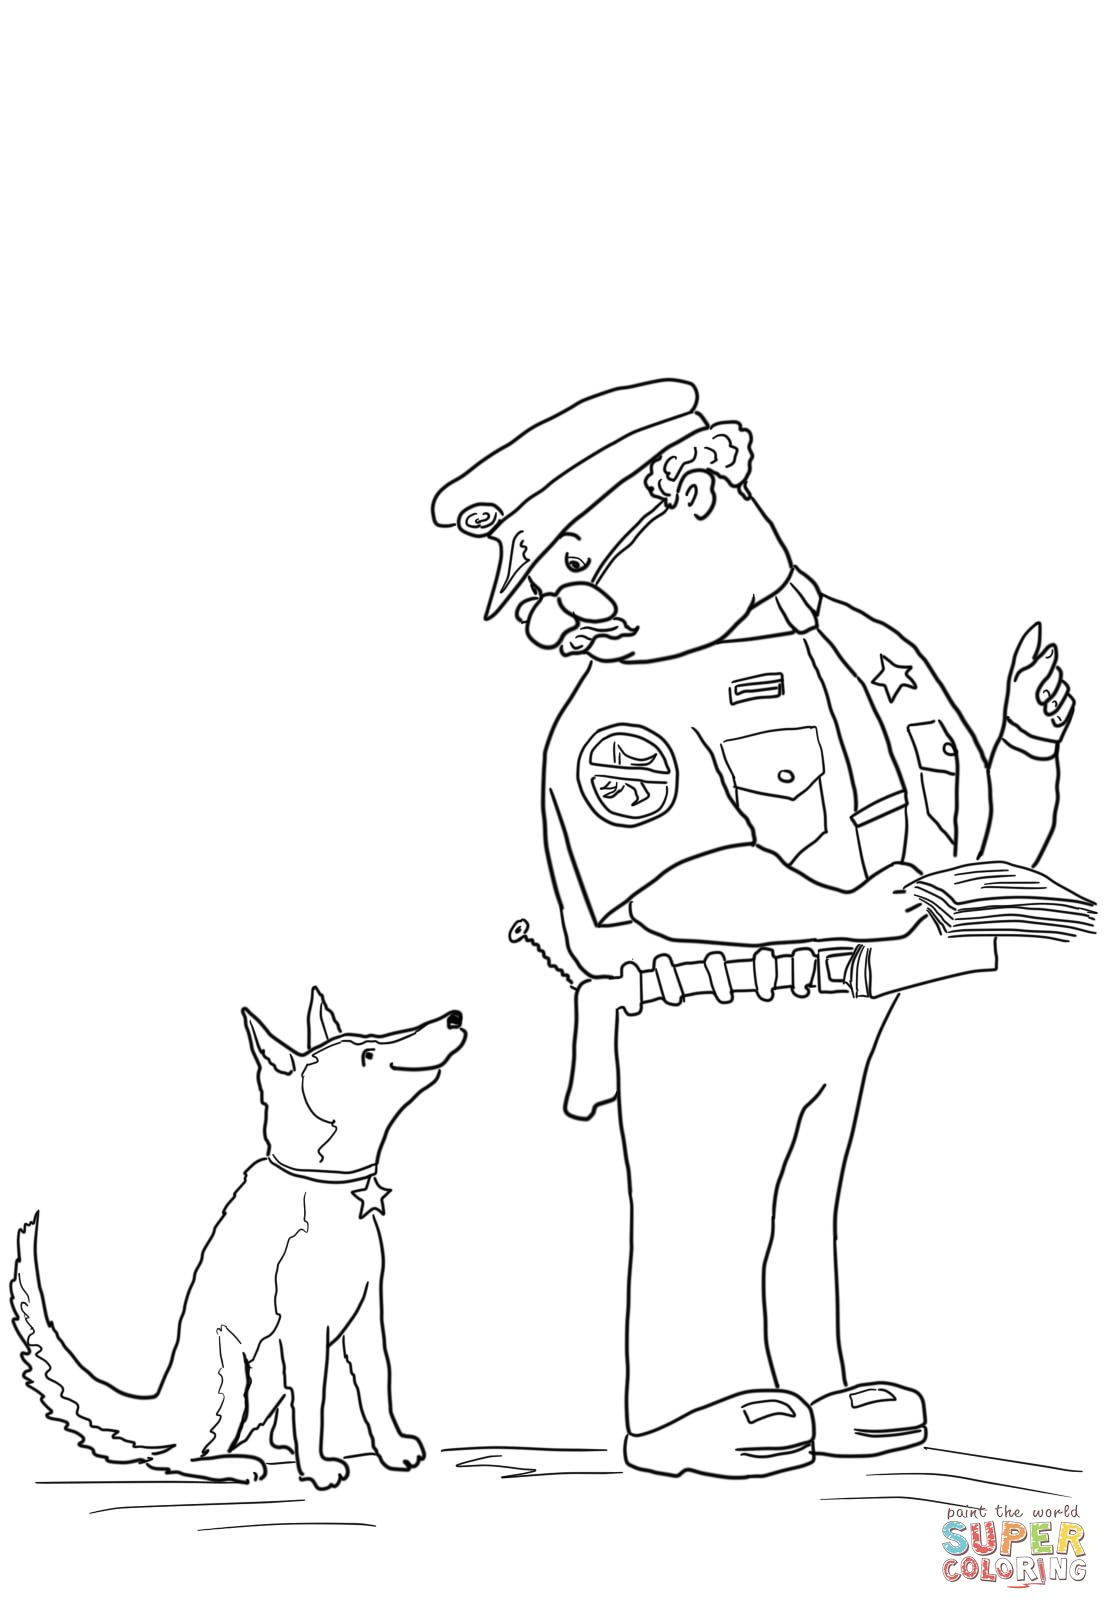 Officer Buckle and gloria with paper work coloring page